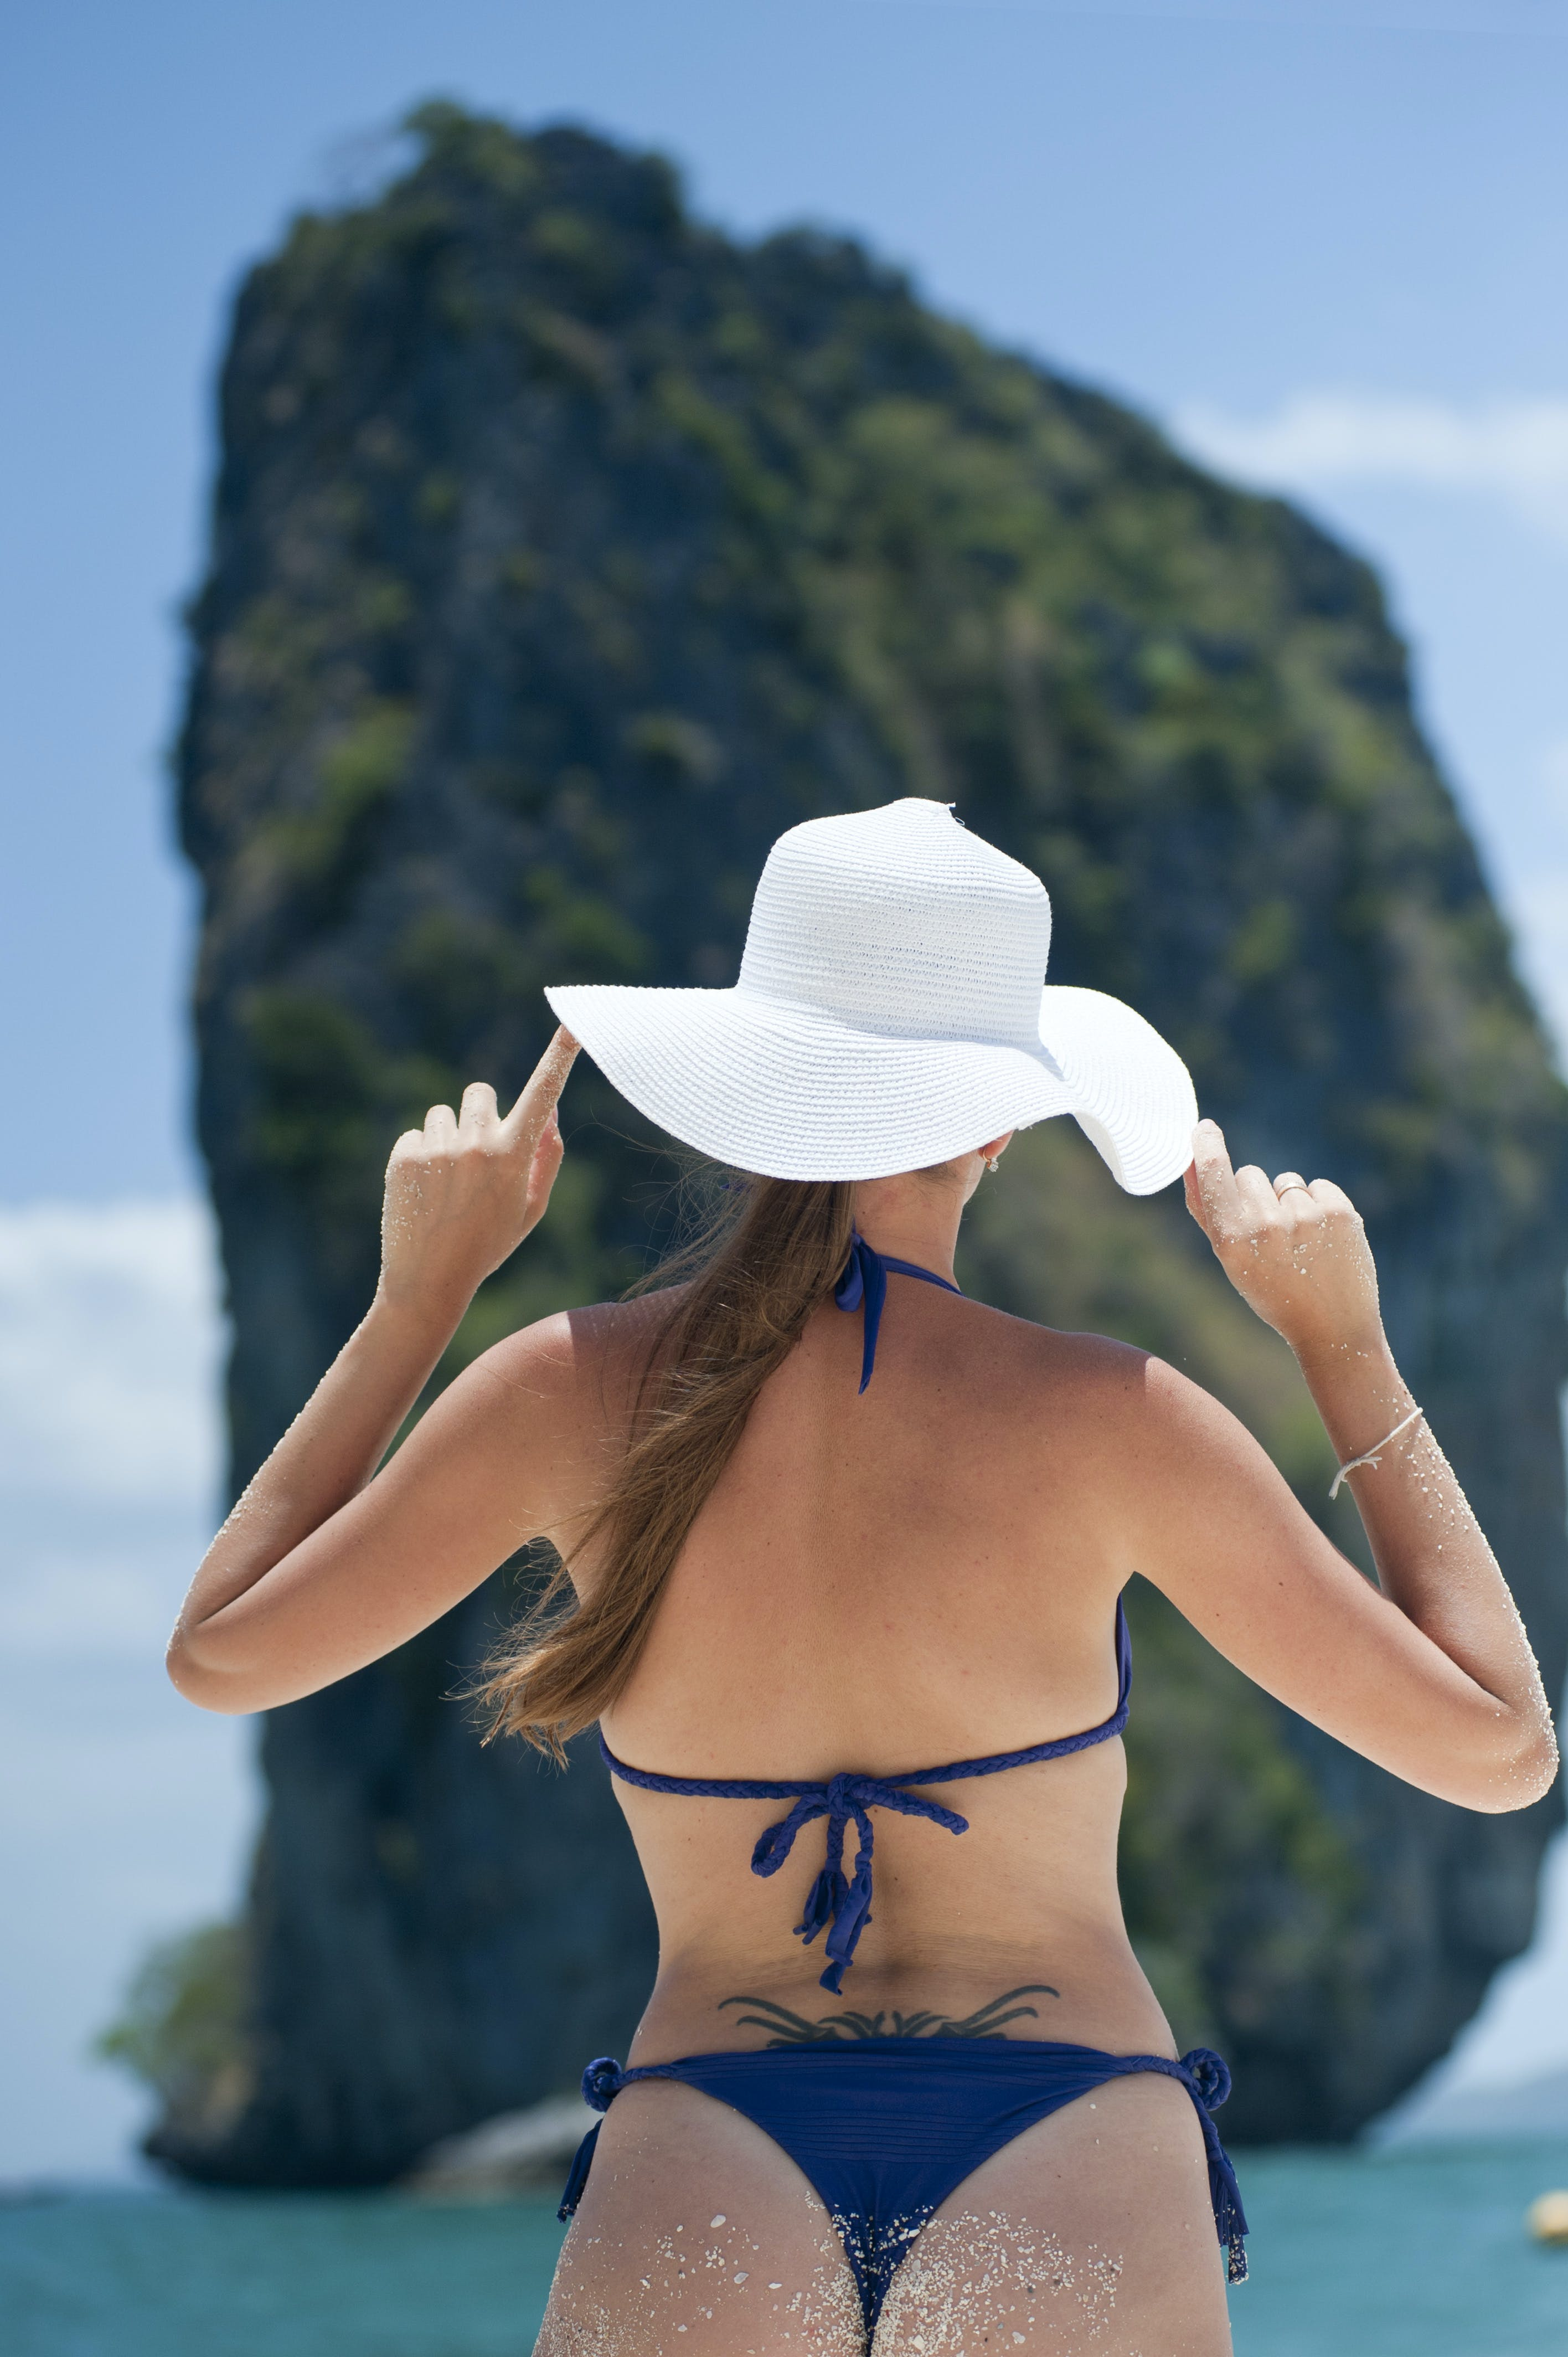 Woman In Blue Bikini Set Wearing White Sun Hat In Front Of Rock Formation